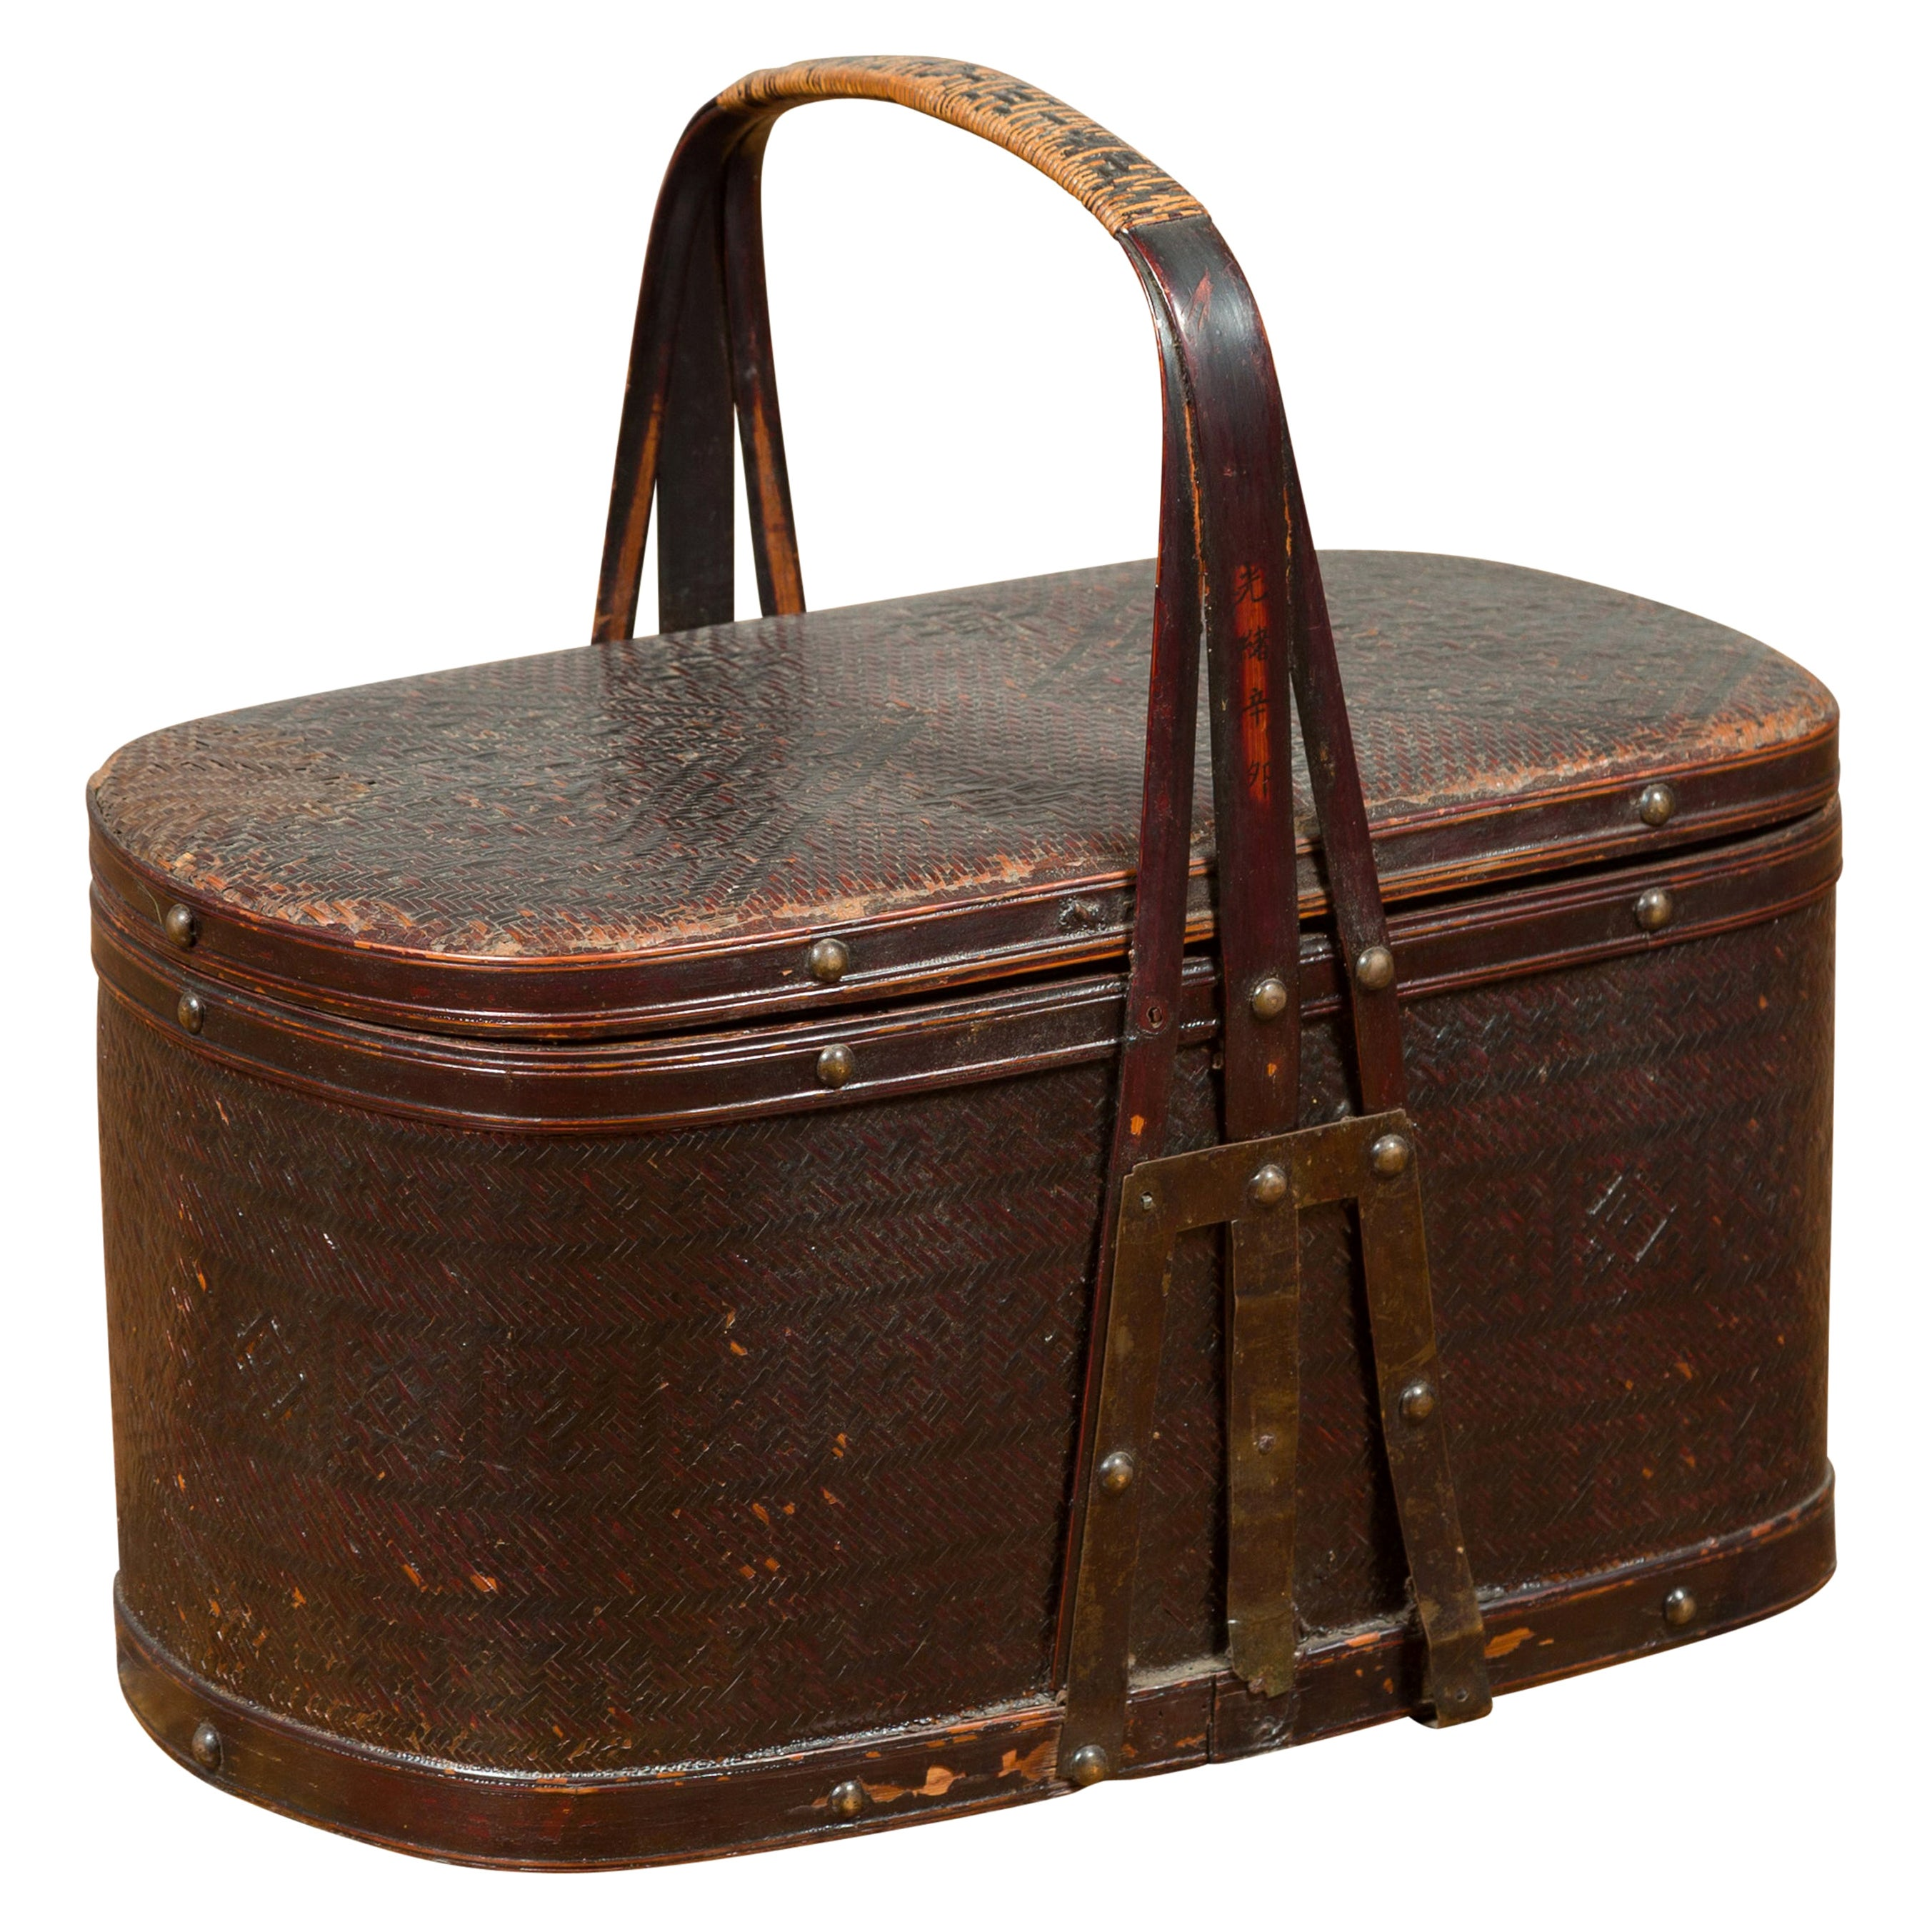 Antique Chinese Rattan and Bamboo Lunch Box with Geometric Motifs and Handle